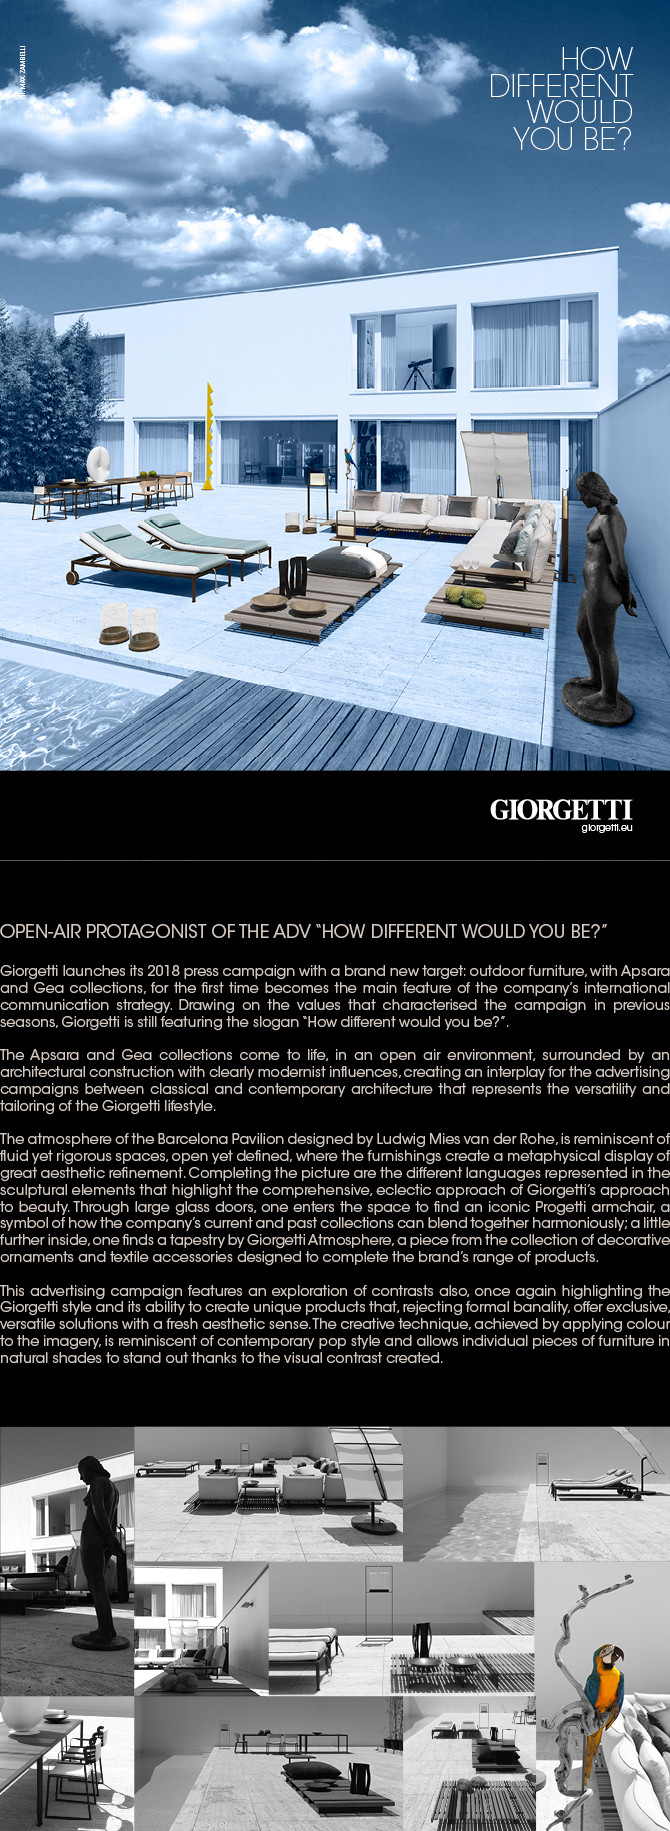 How different would you be? - Giorgetti Open Air